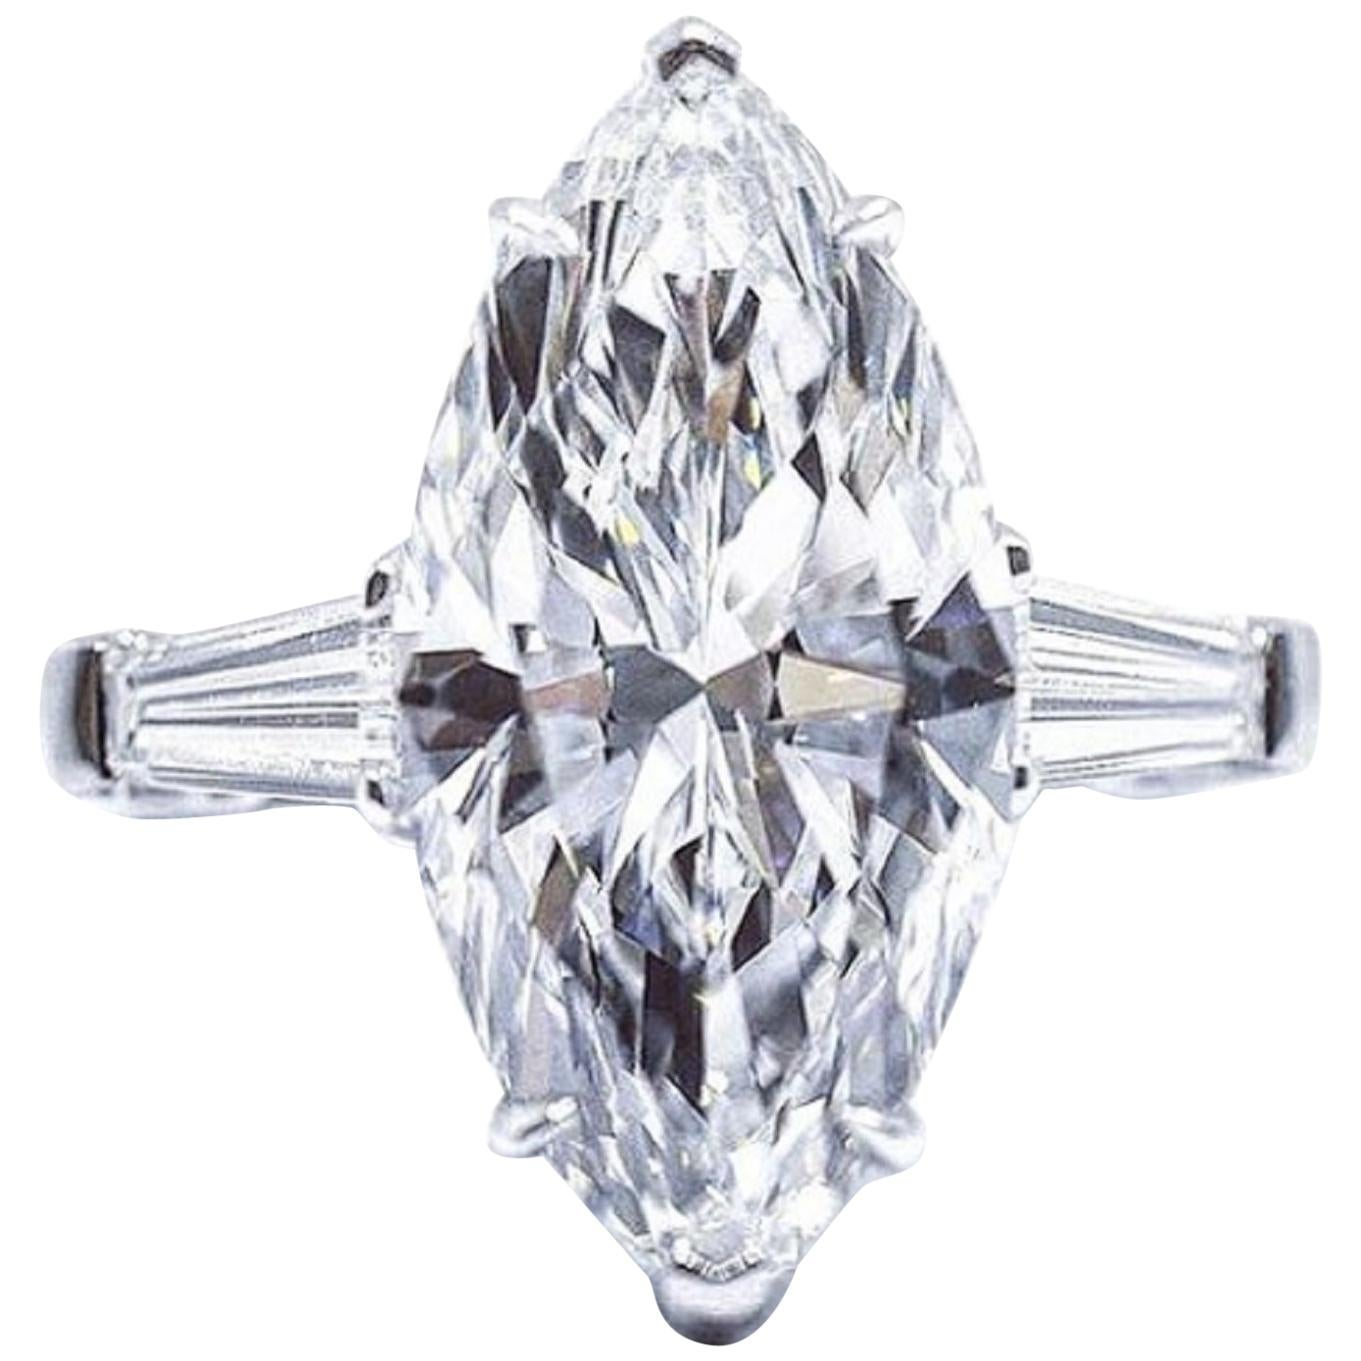 I FLAWLESS GIA Certified 2.65 Carat E Color Platinum Ring